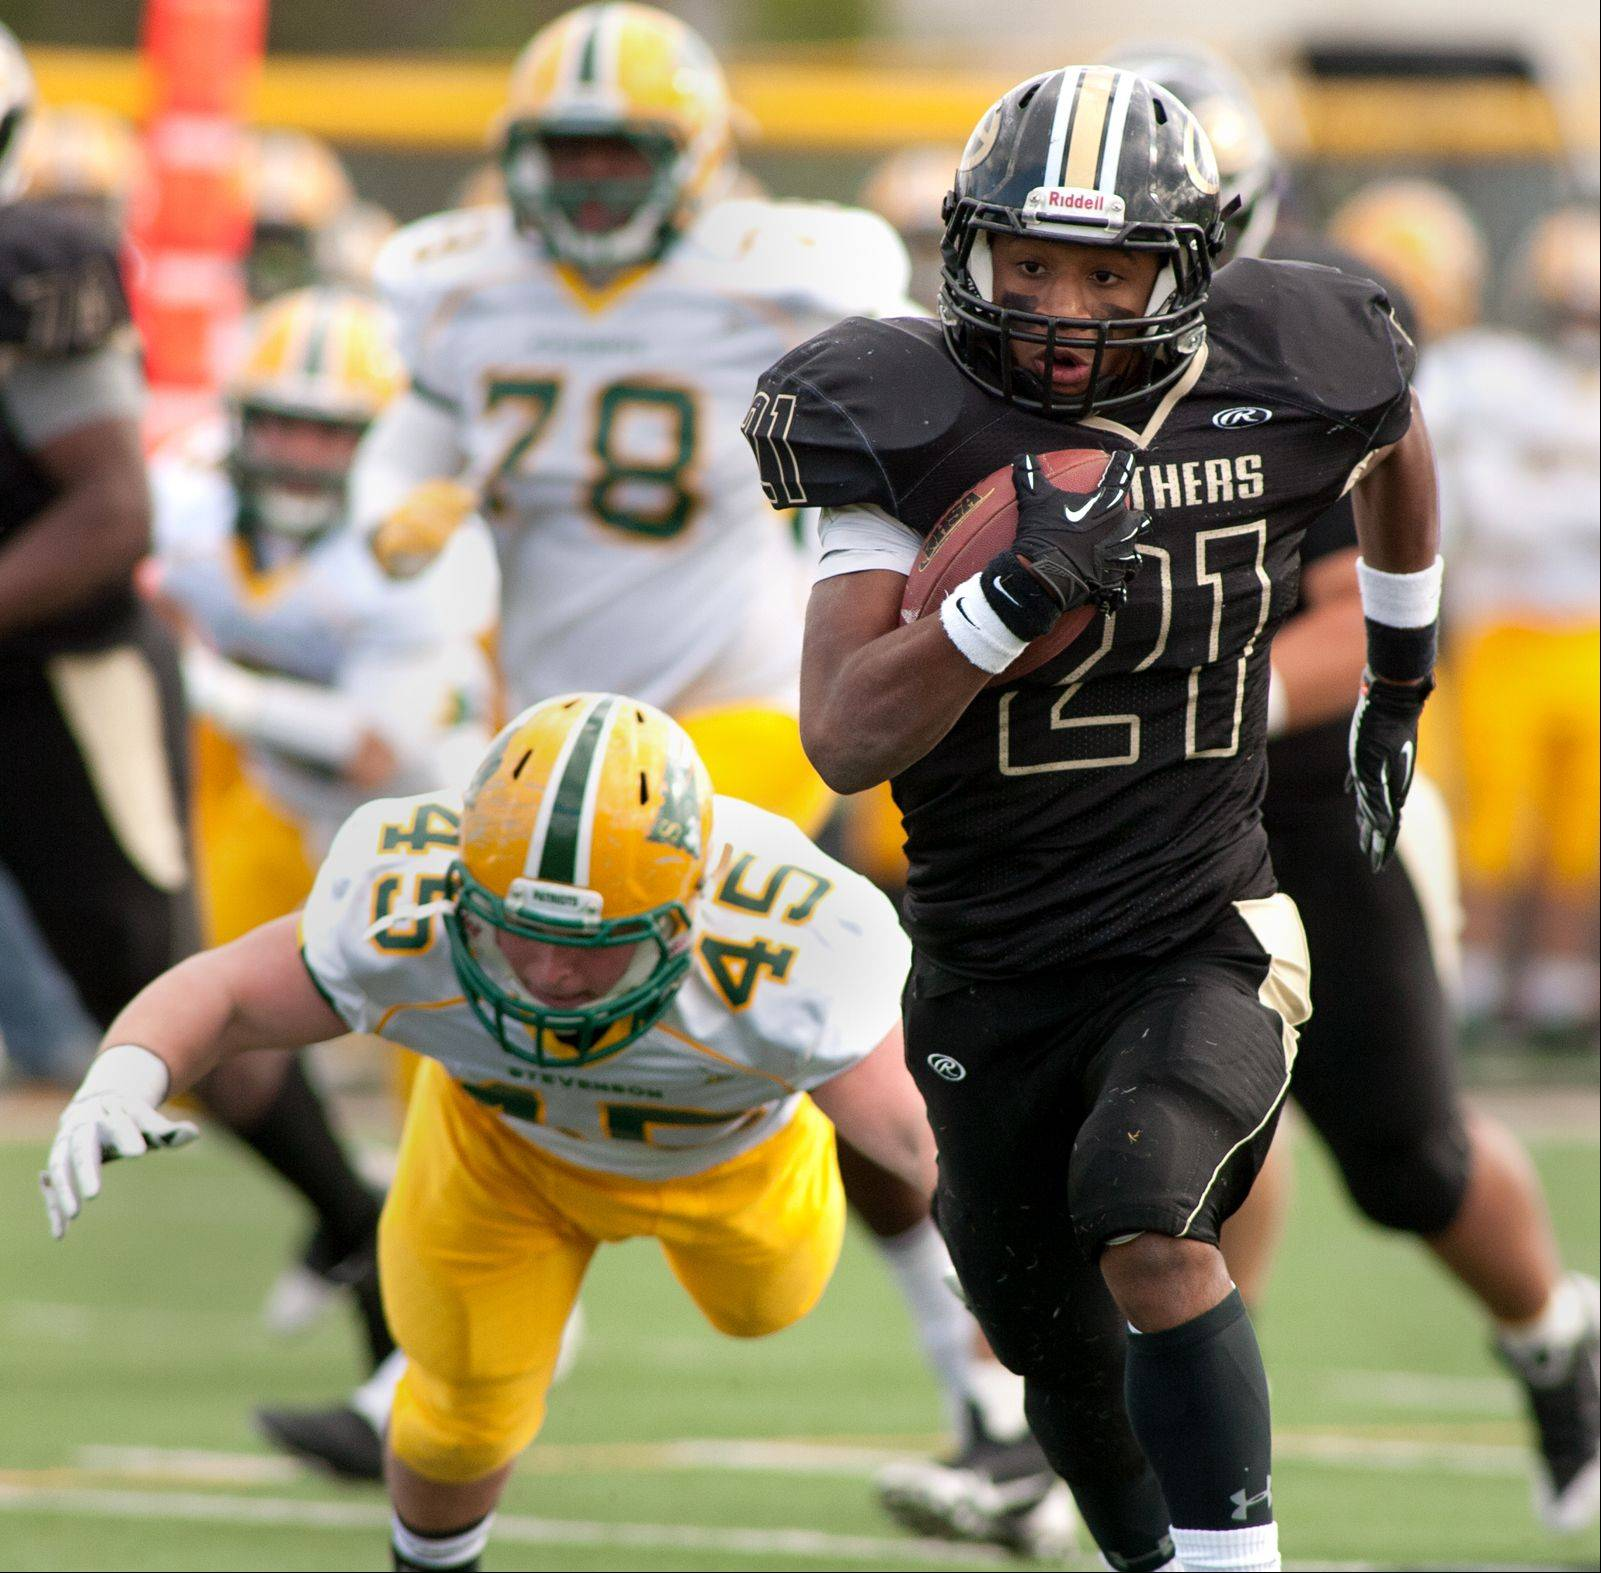 Glenbard North's Justin Jackson eyes the endzone on a 47-yard touchdown run.